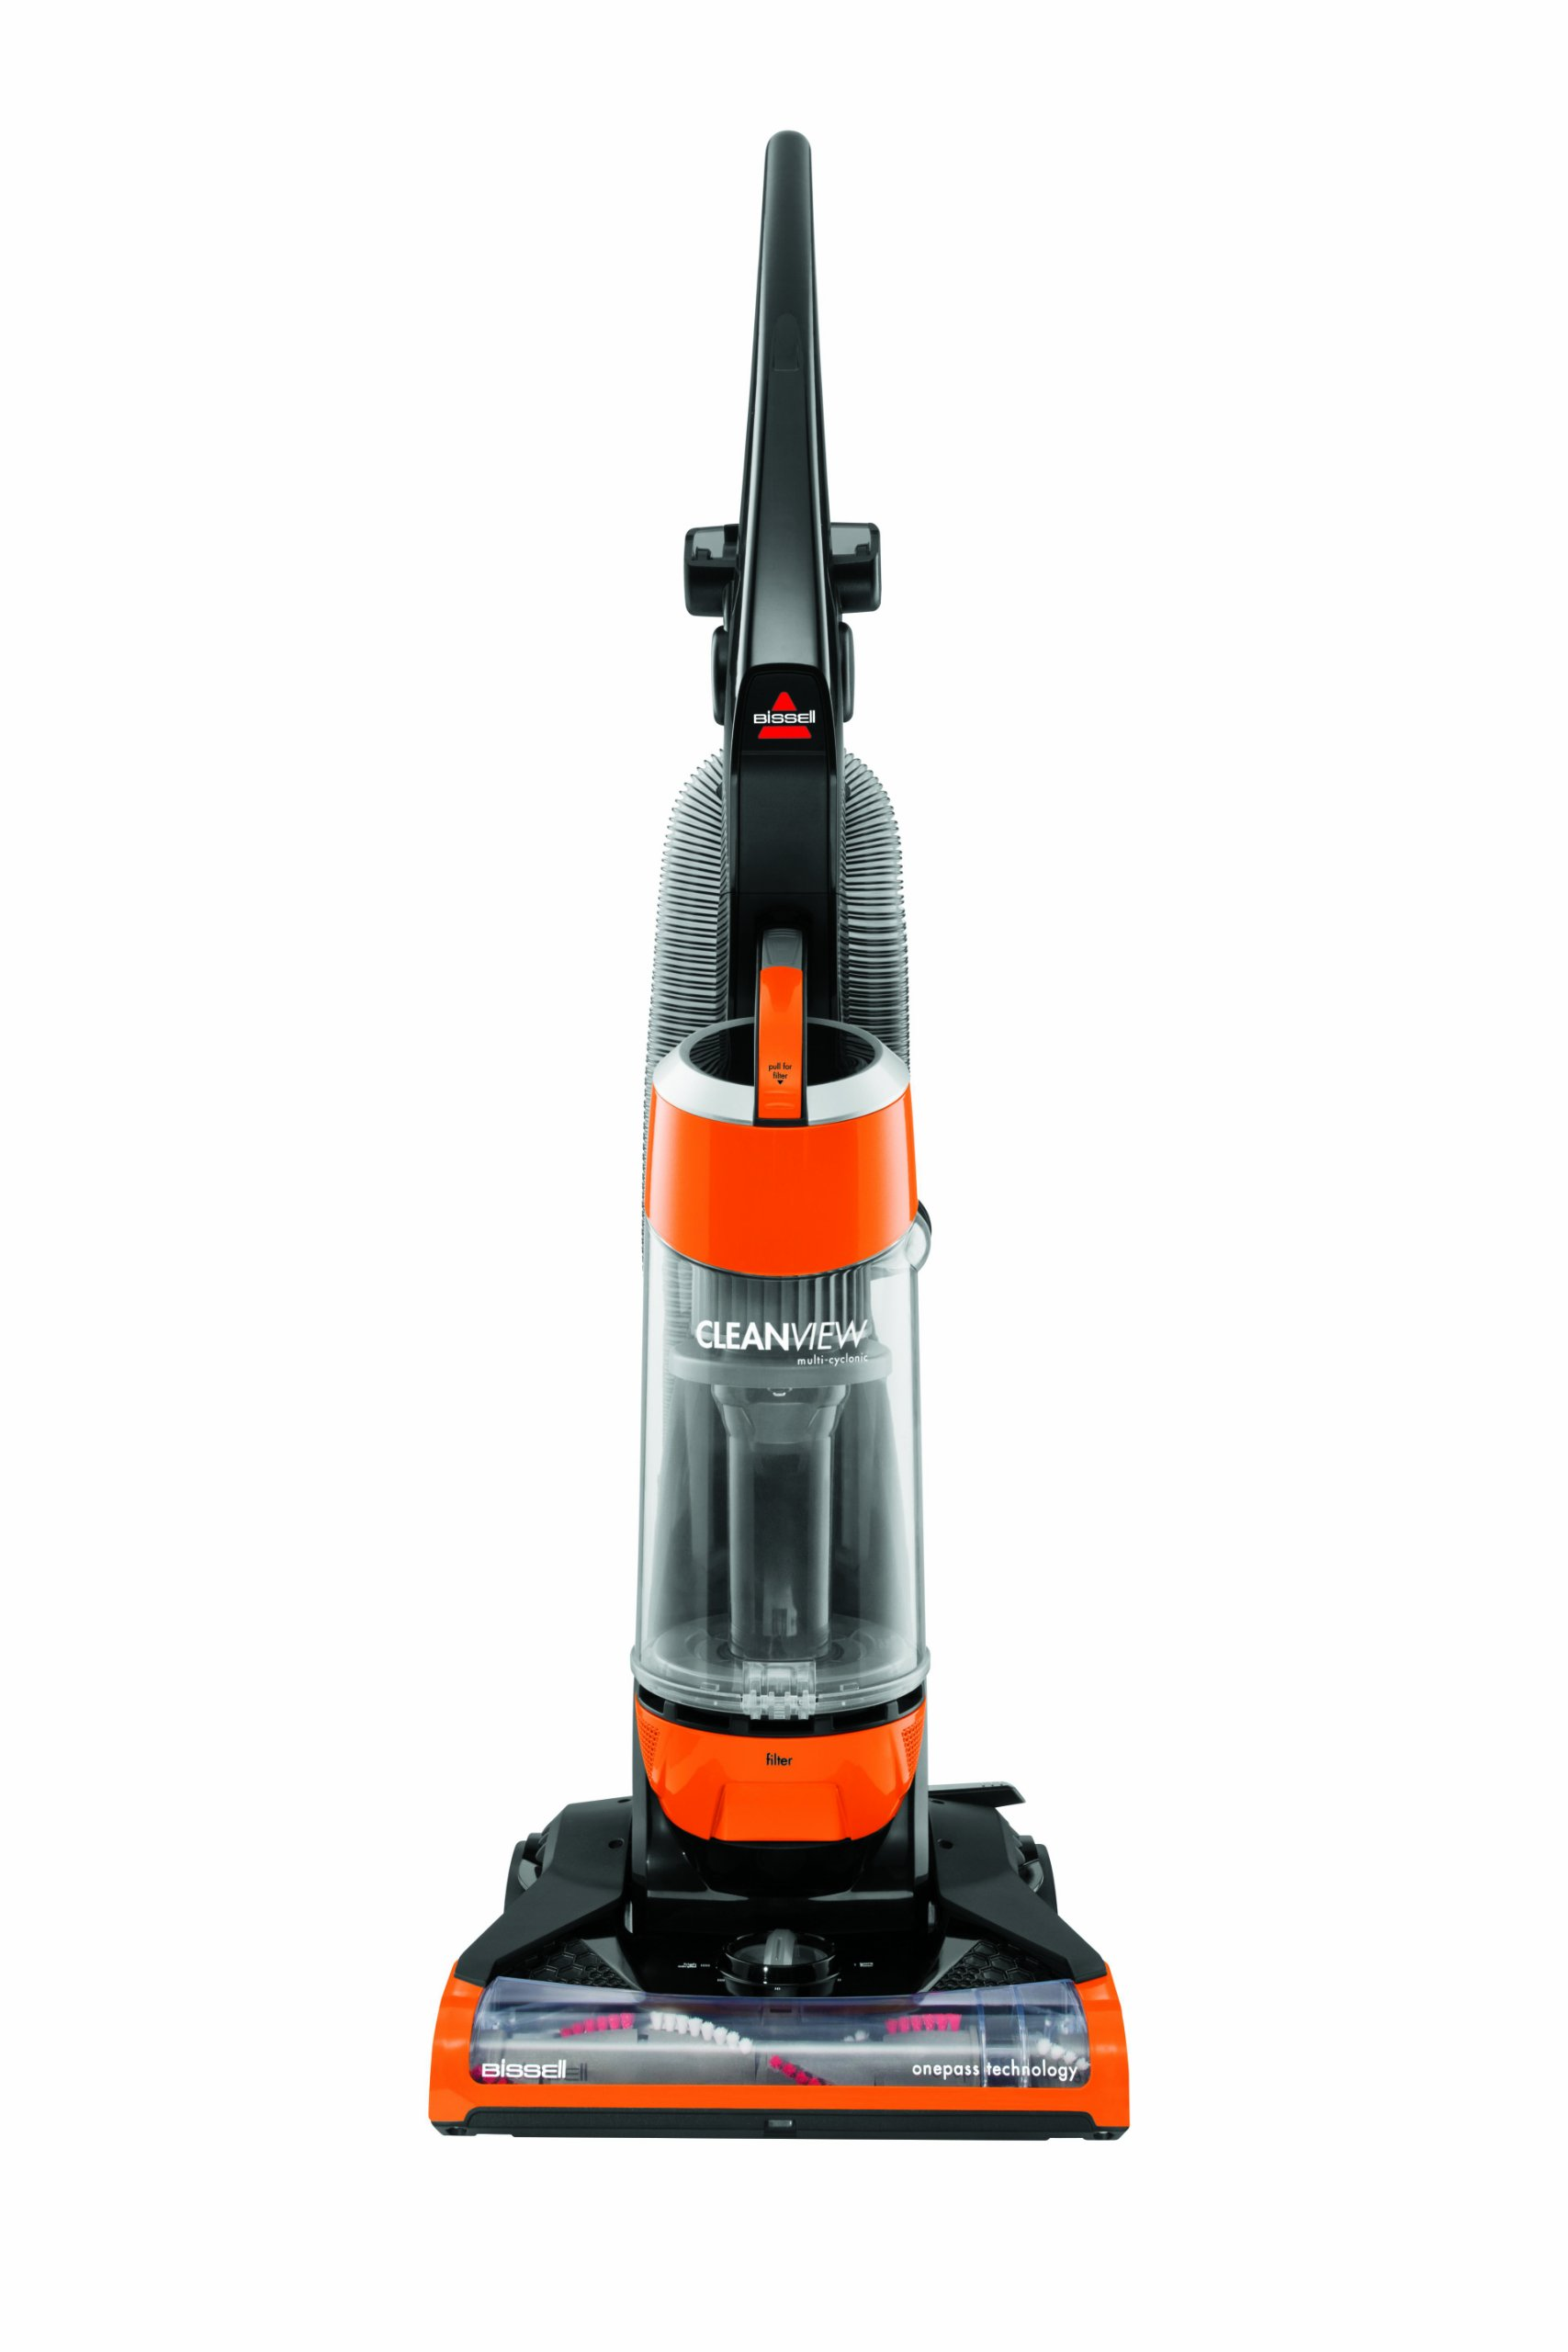 Est. (Serving the Denver Metro as a vacuum store from Littleton for over 30 years) Bring your Bissell vacuum cleaner in today and receive a complimentary consultation. If your machine needs service we will provide you with an equivalent vacuum as a loaner.